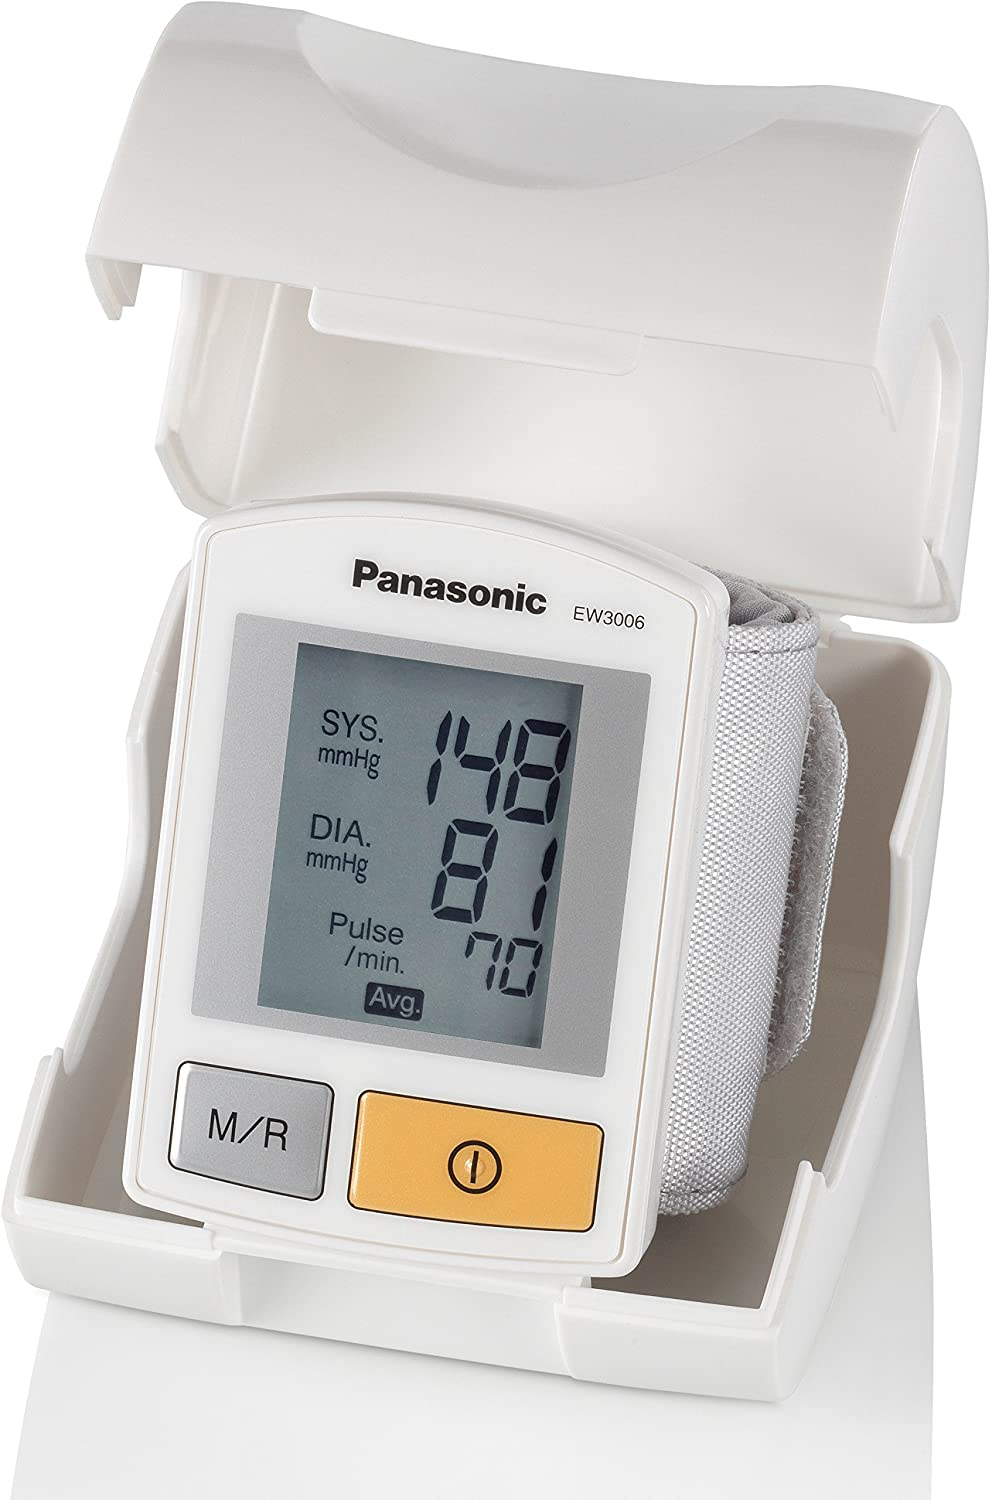 Amazon.com: Panasonic EW3006 Diagnostic Wrist Blood Pressure ...